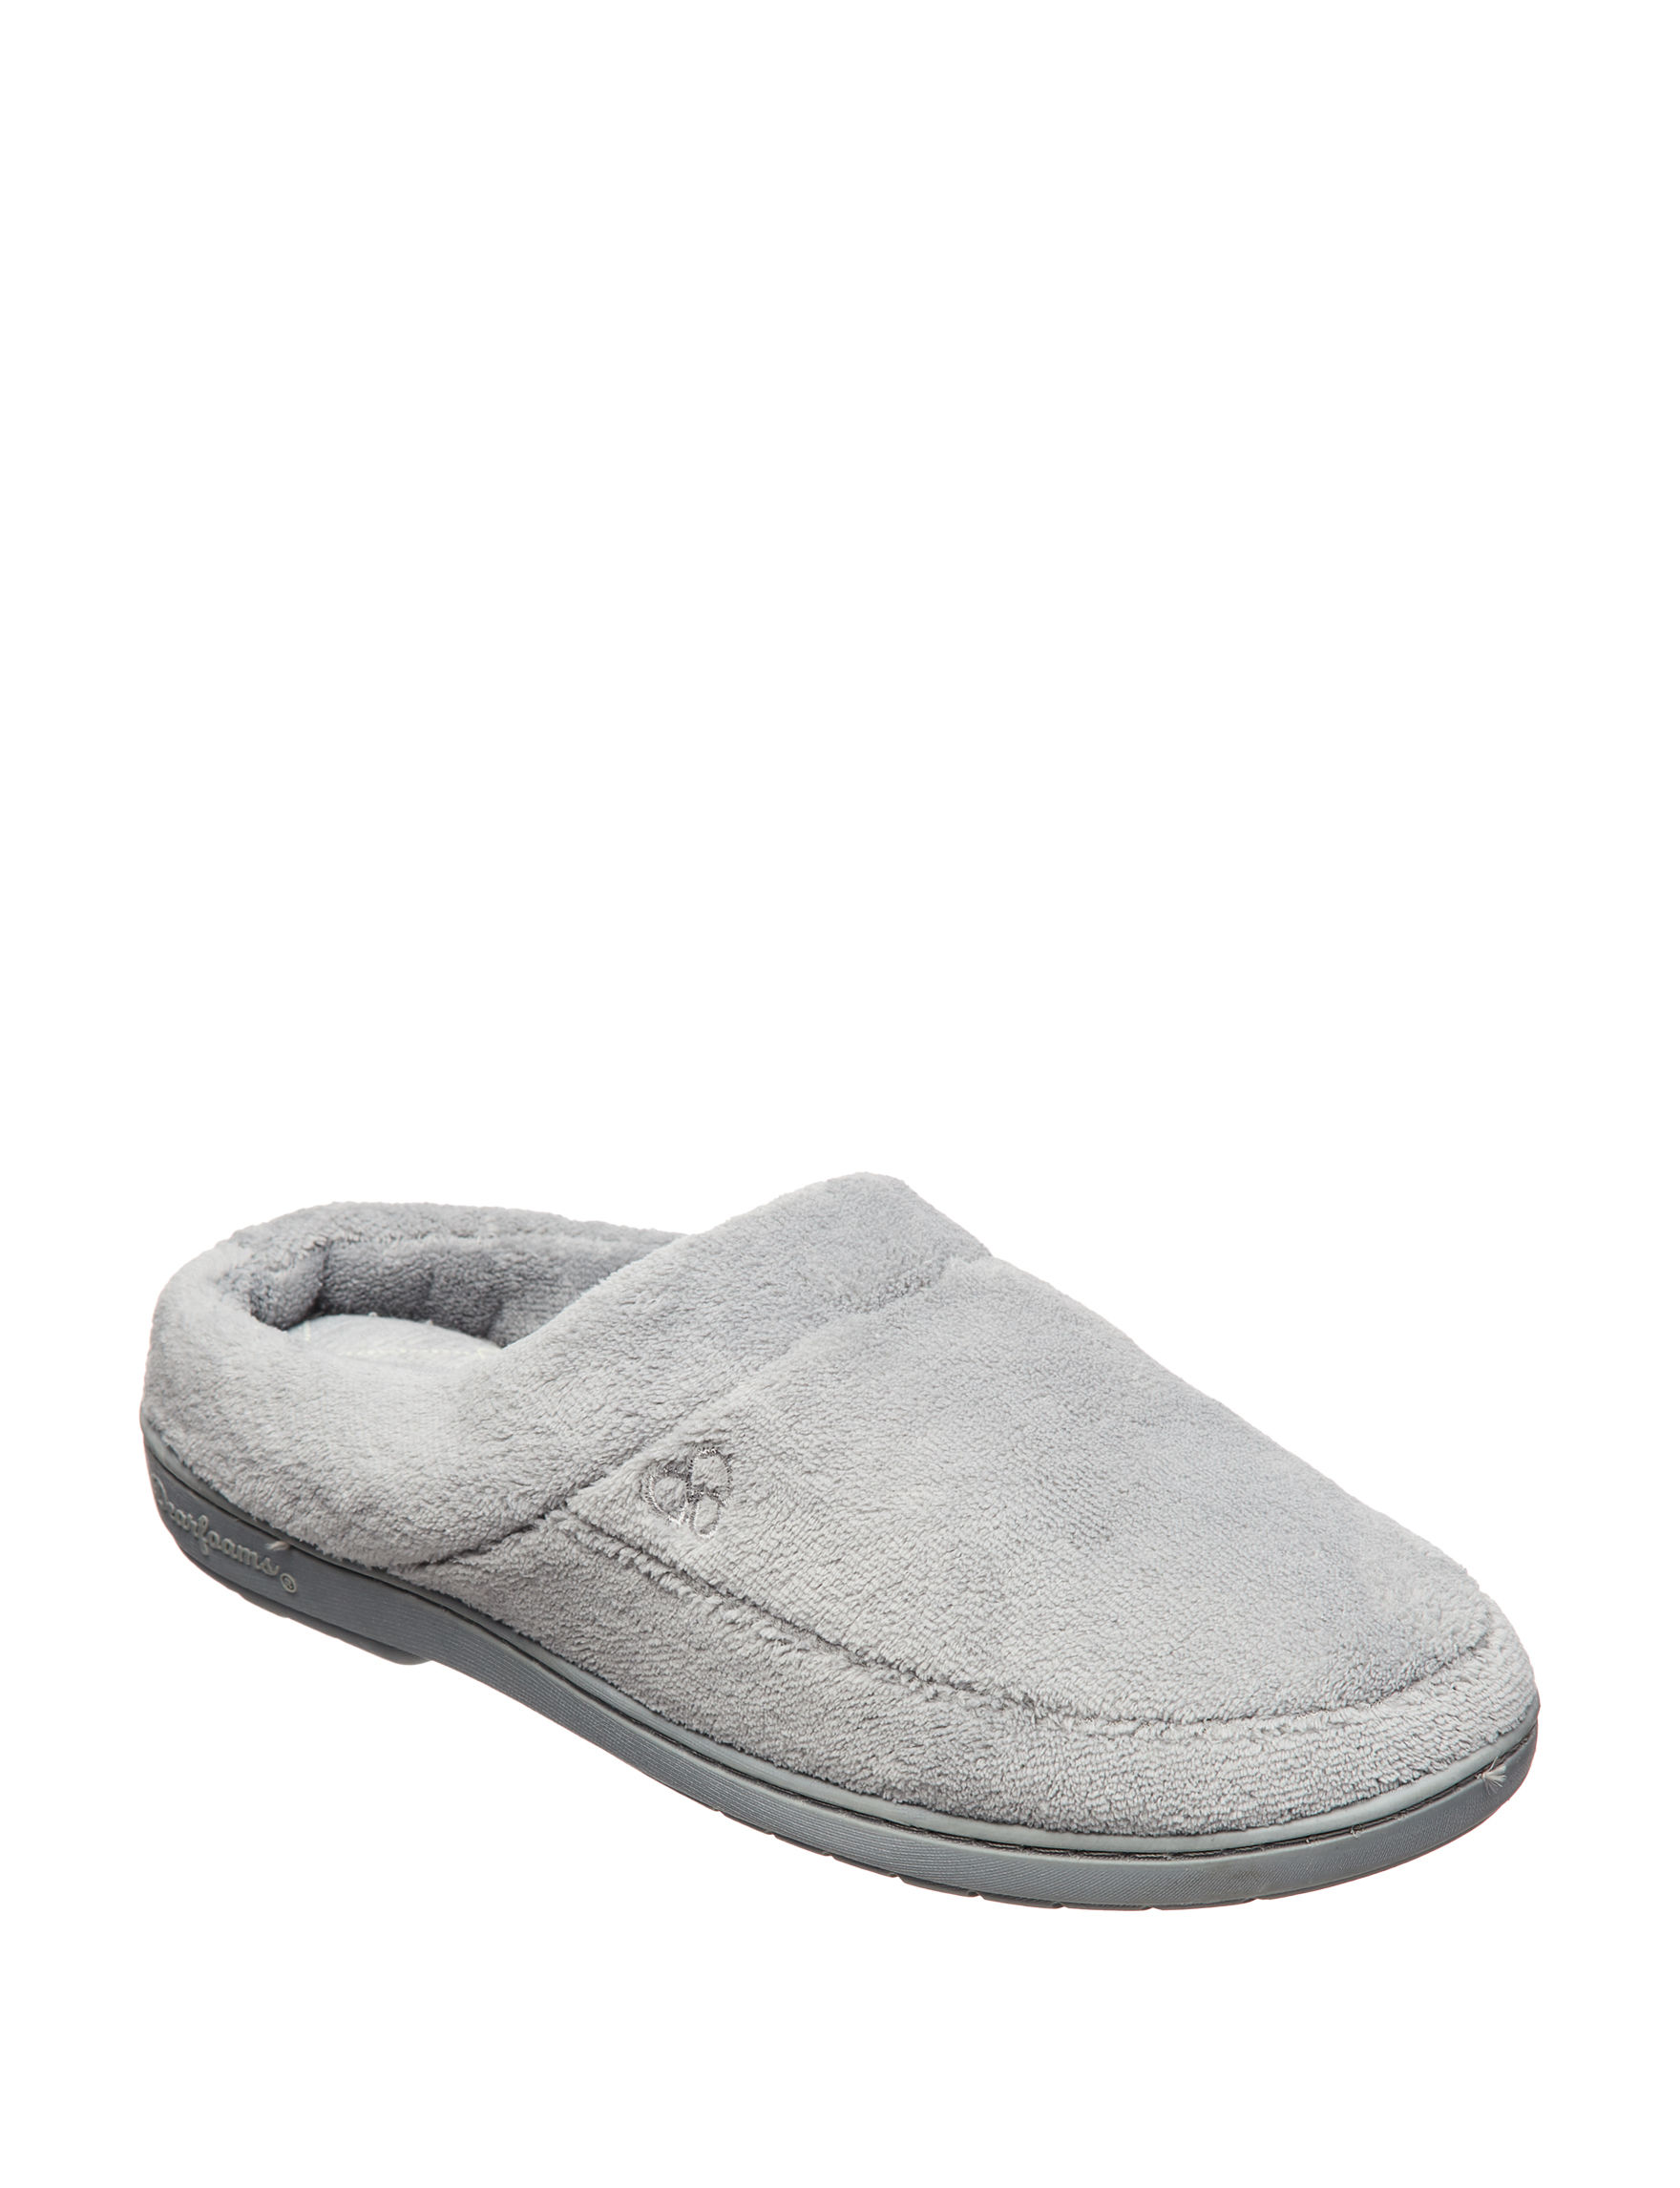 Dearfoams Grey Slipper Shoes